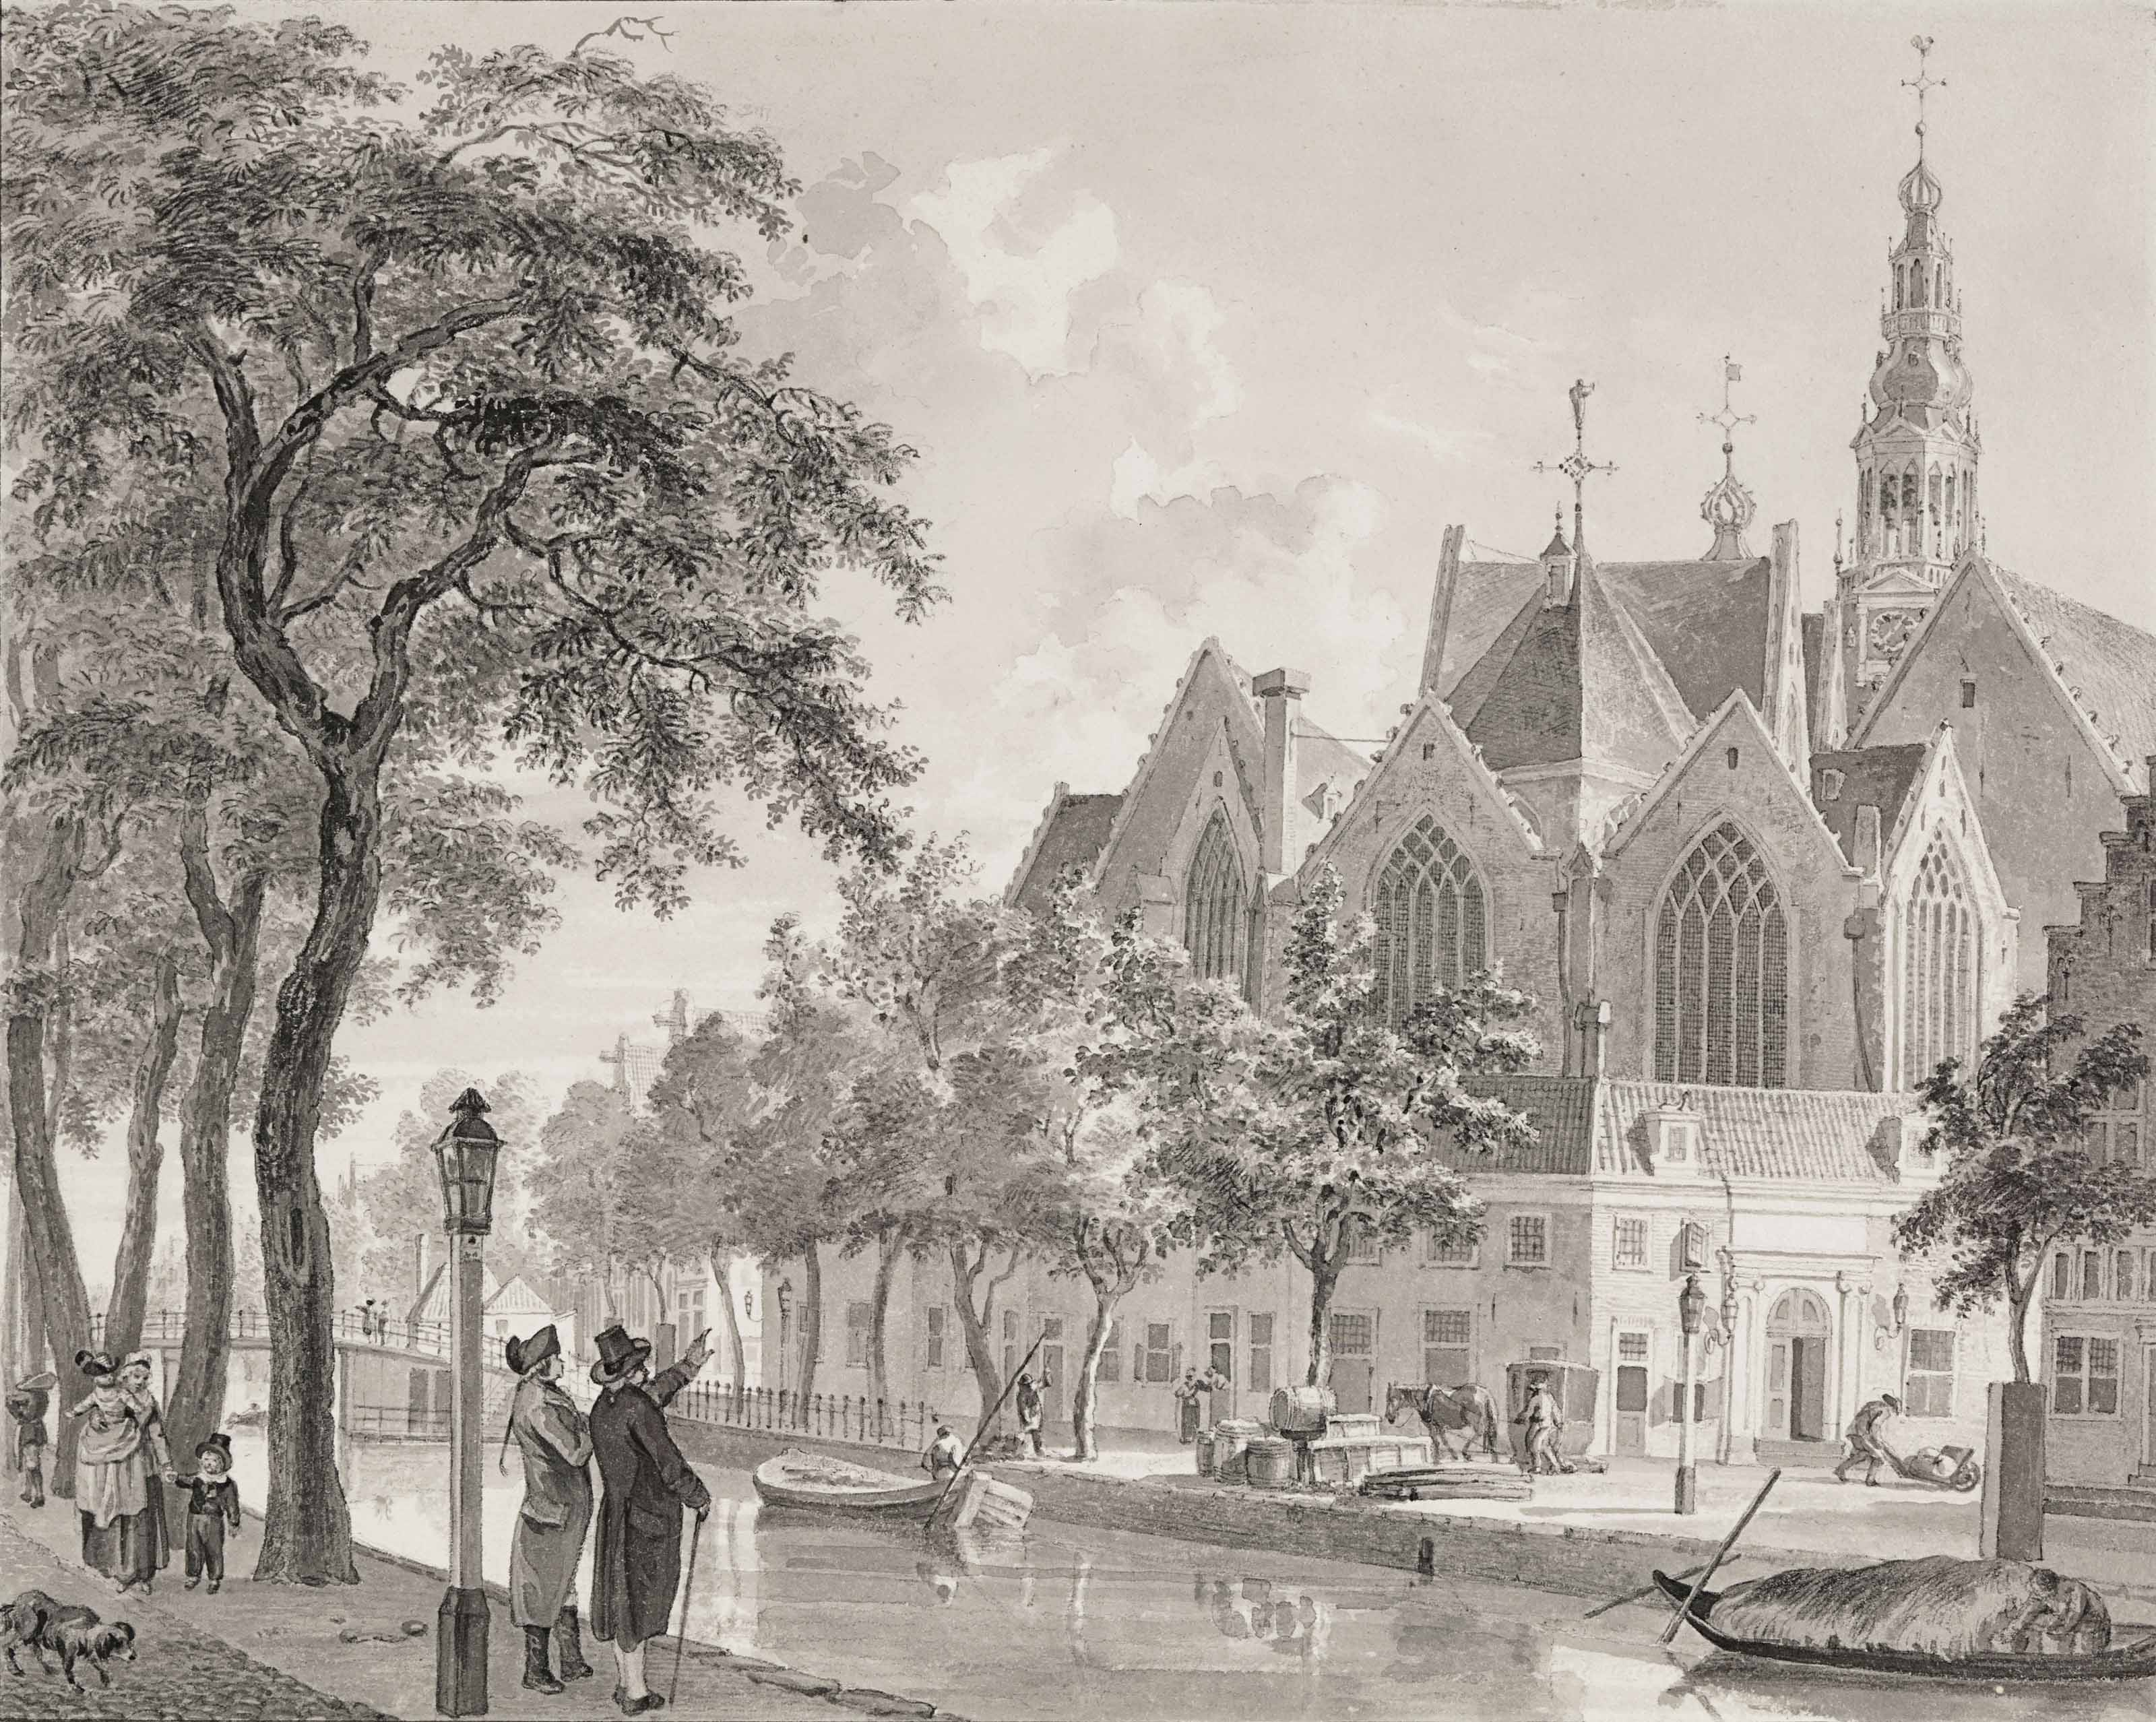 A view of the Oude Kerk, Amsterdam, seen from the Oudezijds Voorburgwal